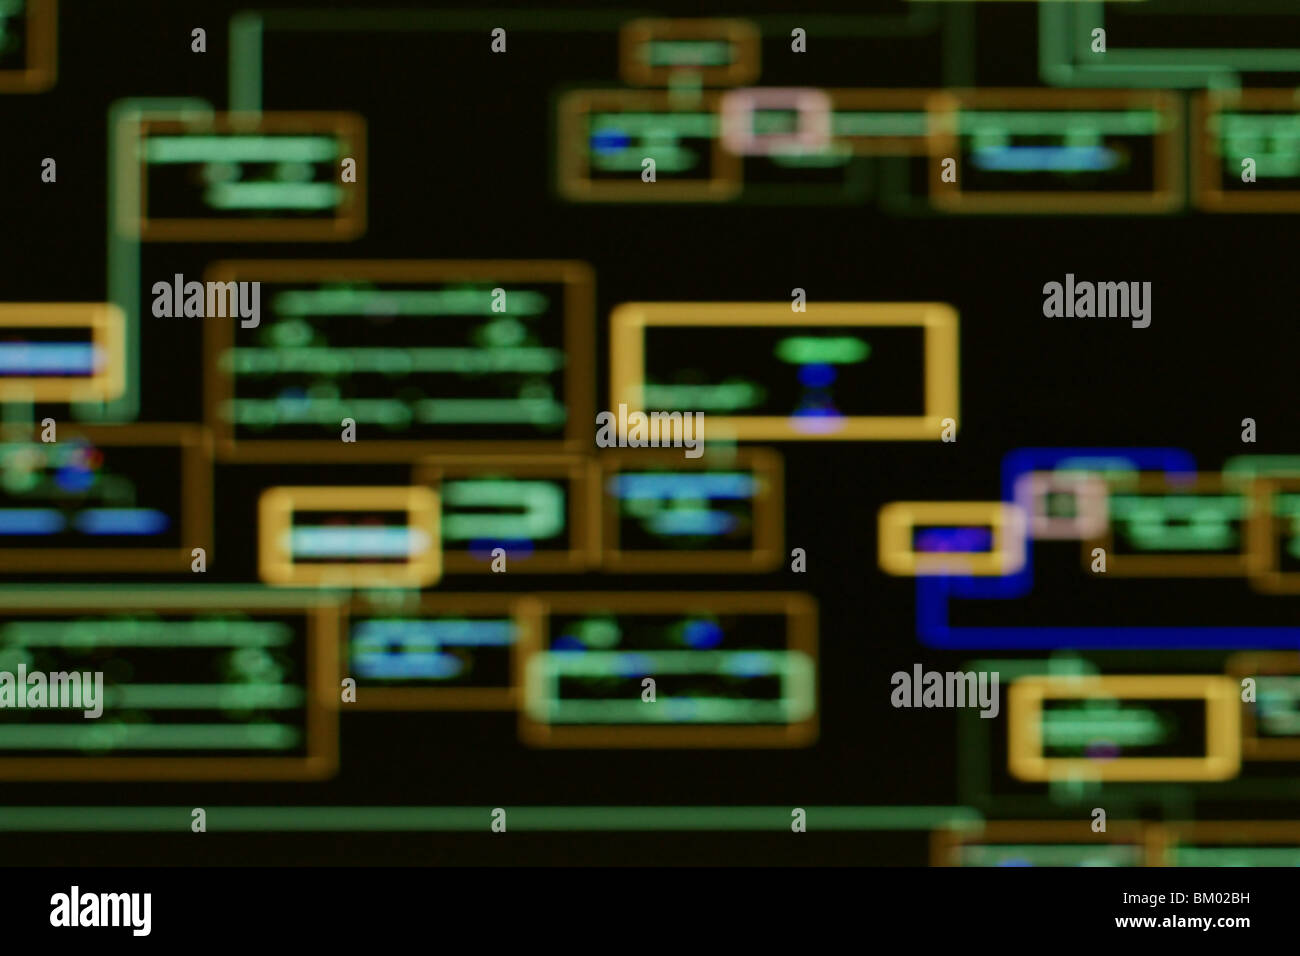 Concept image - blurred view of power network schematics on computer SCADA display. - Stock Image